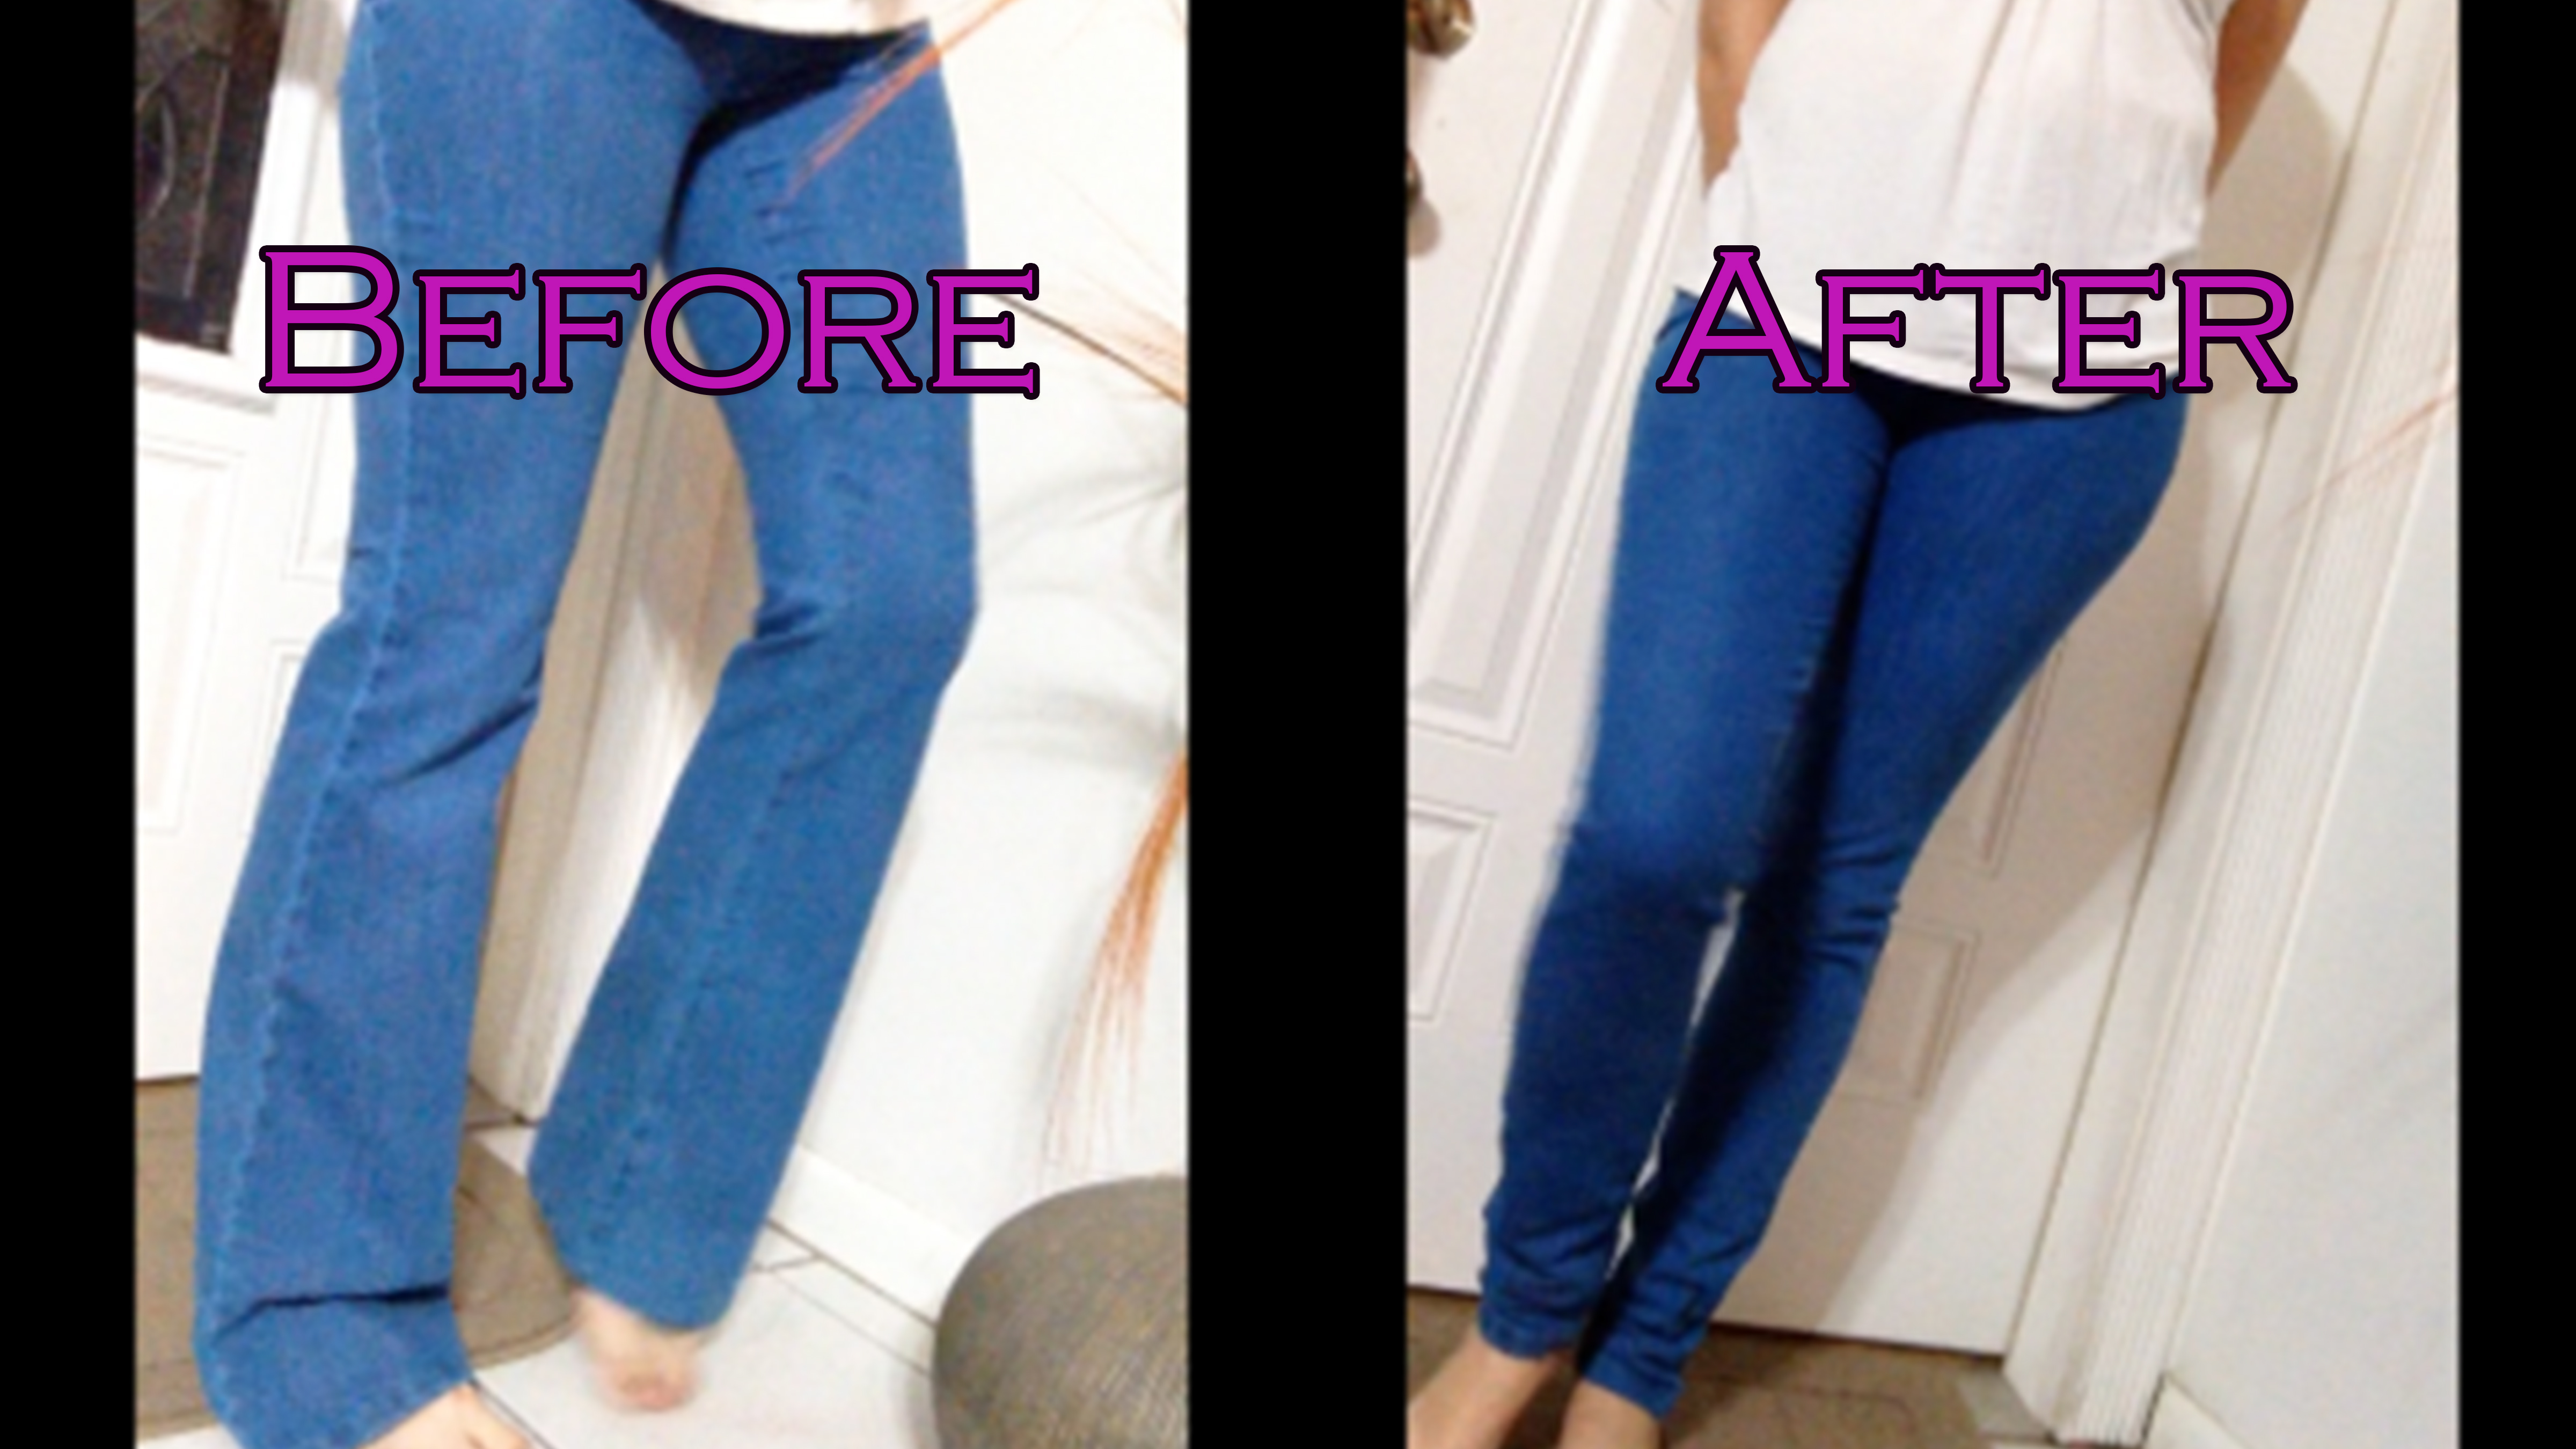 How to Make Jeans Skinnier | Stretchy Skinny Jeans | How to Shrink Jeans